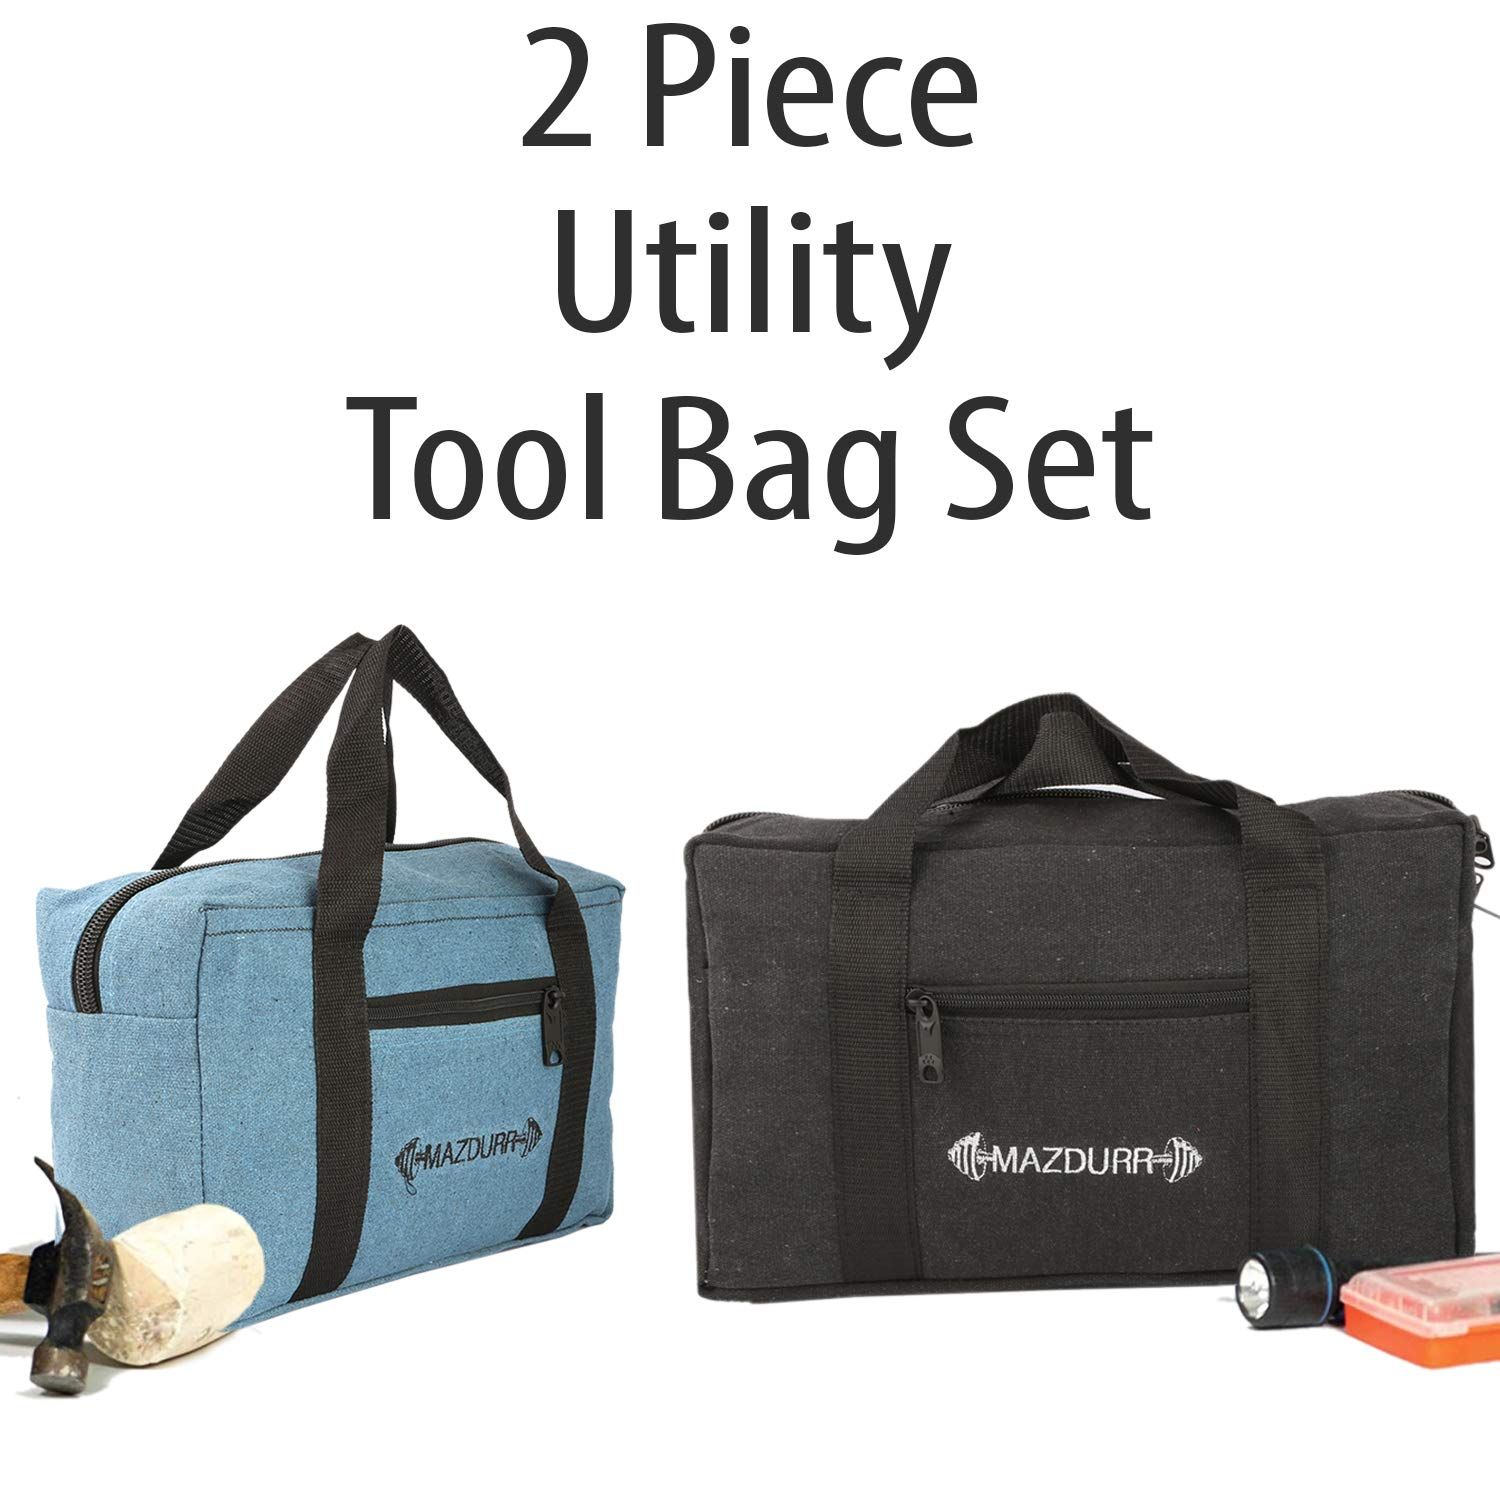 Canvas Tool Bag Combo Includes 15 Medium 13 Small Tool Bag Organizer Tote Bags For